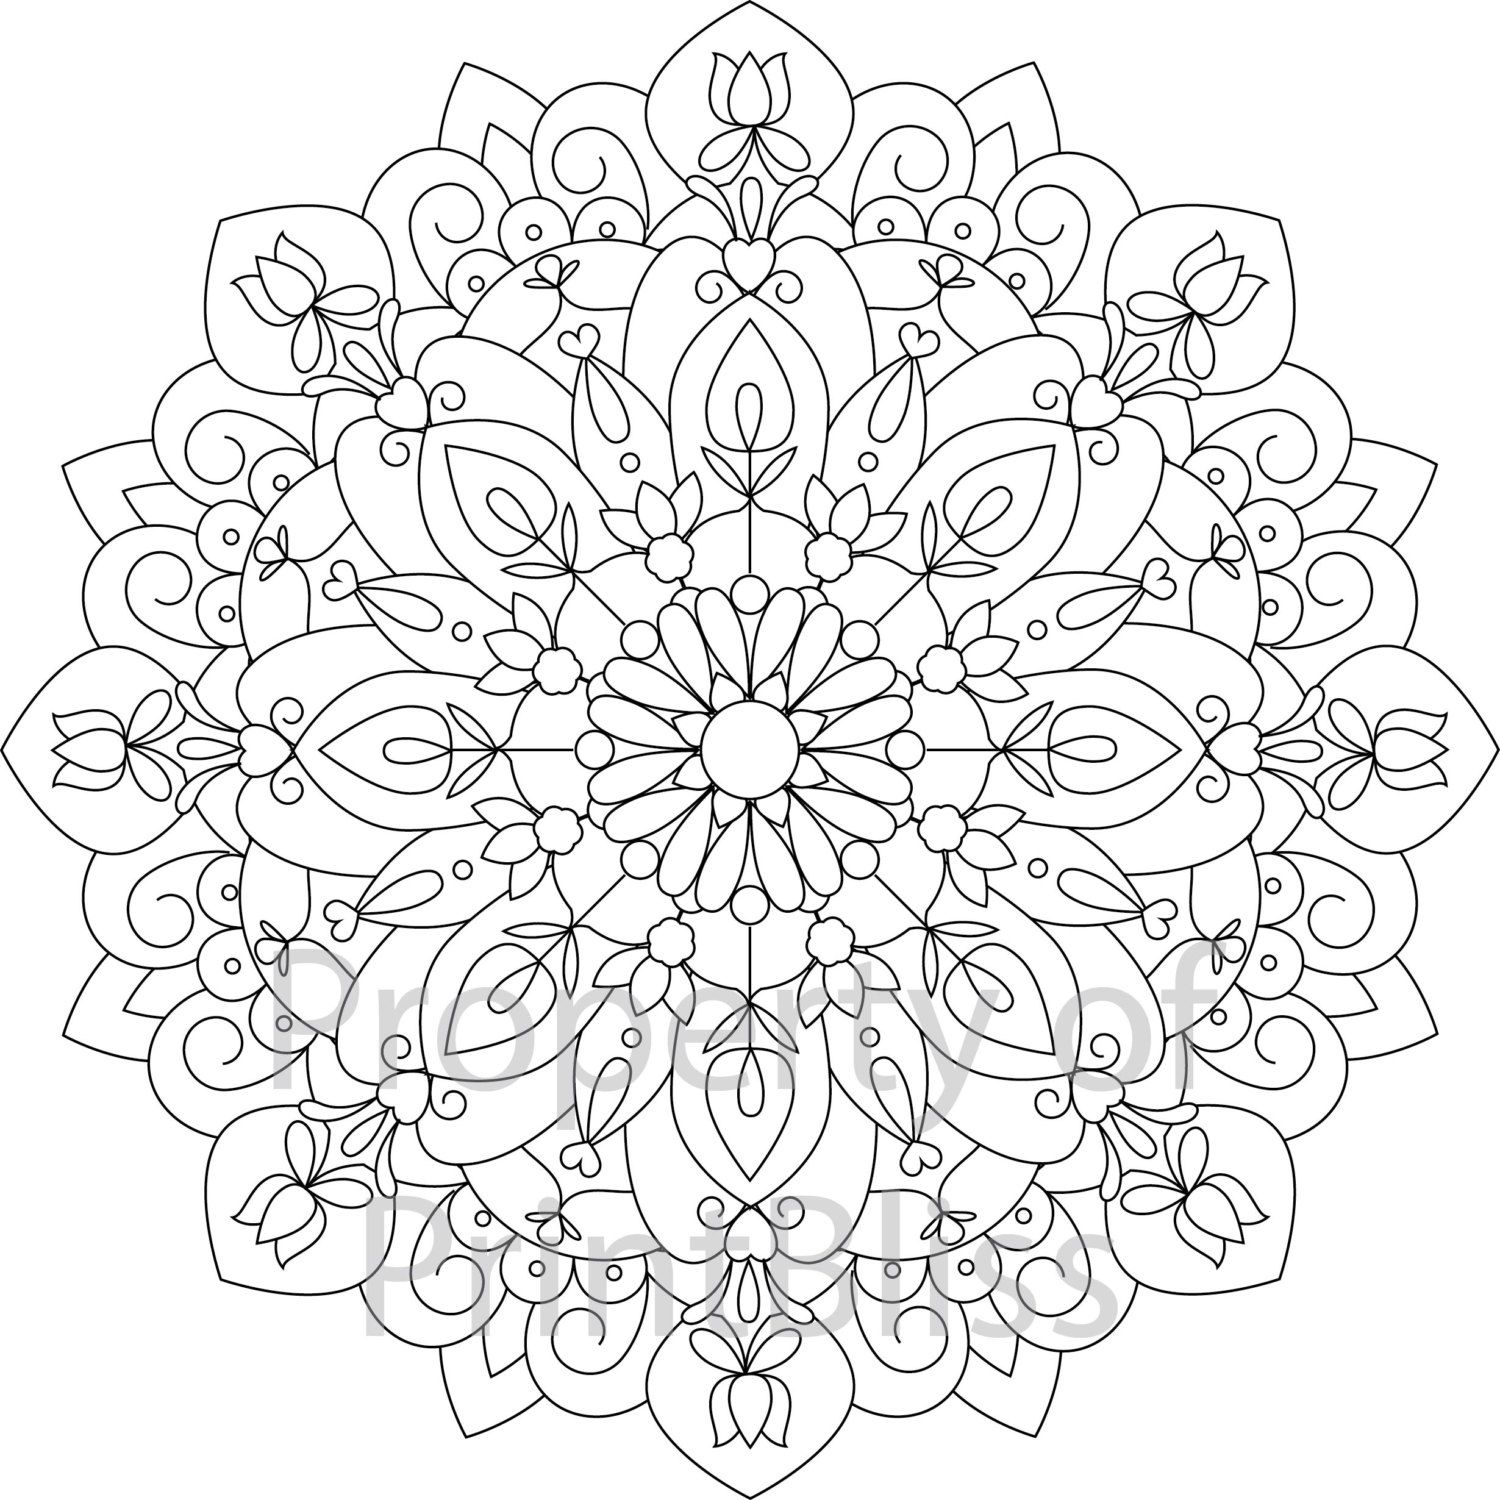 10 Flower Mandala Printable Coloring Page By Printbliss On Etsy